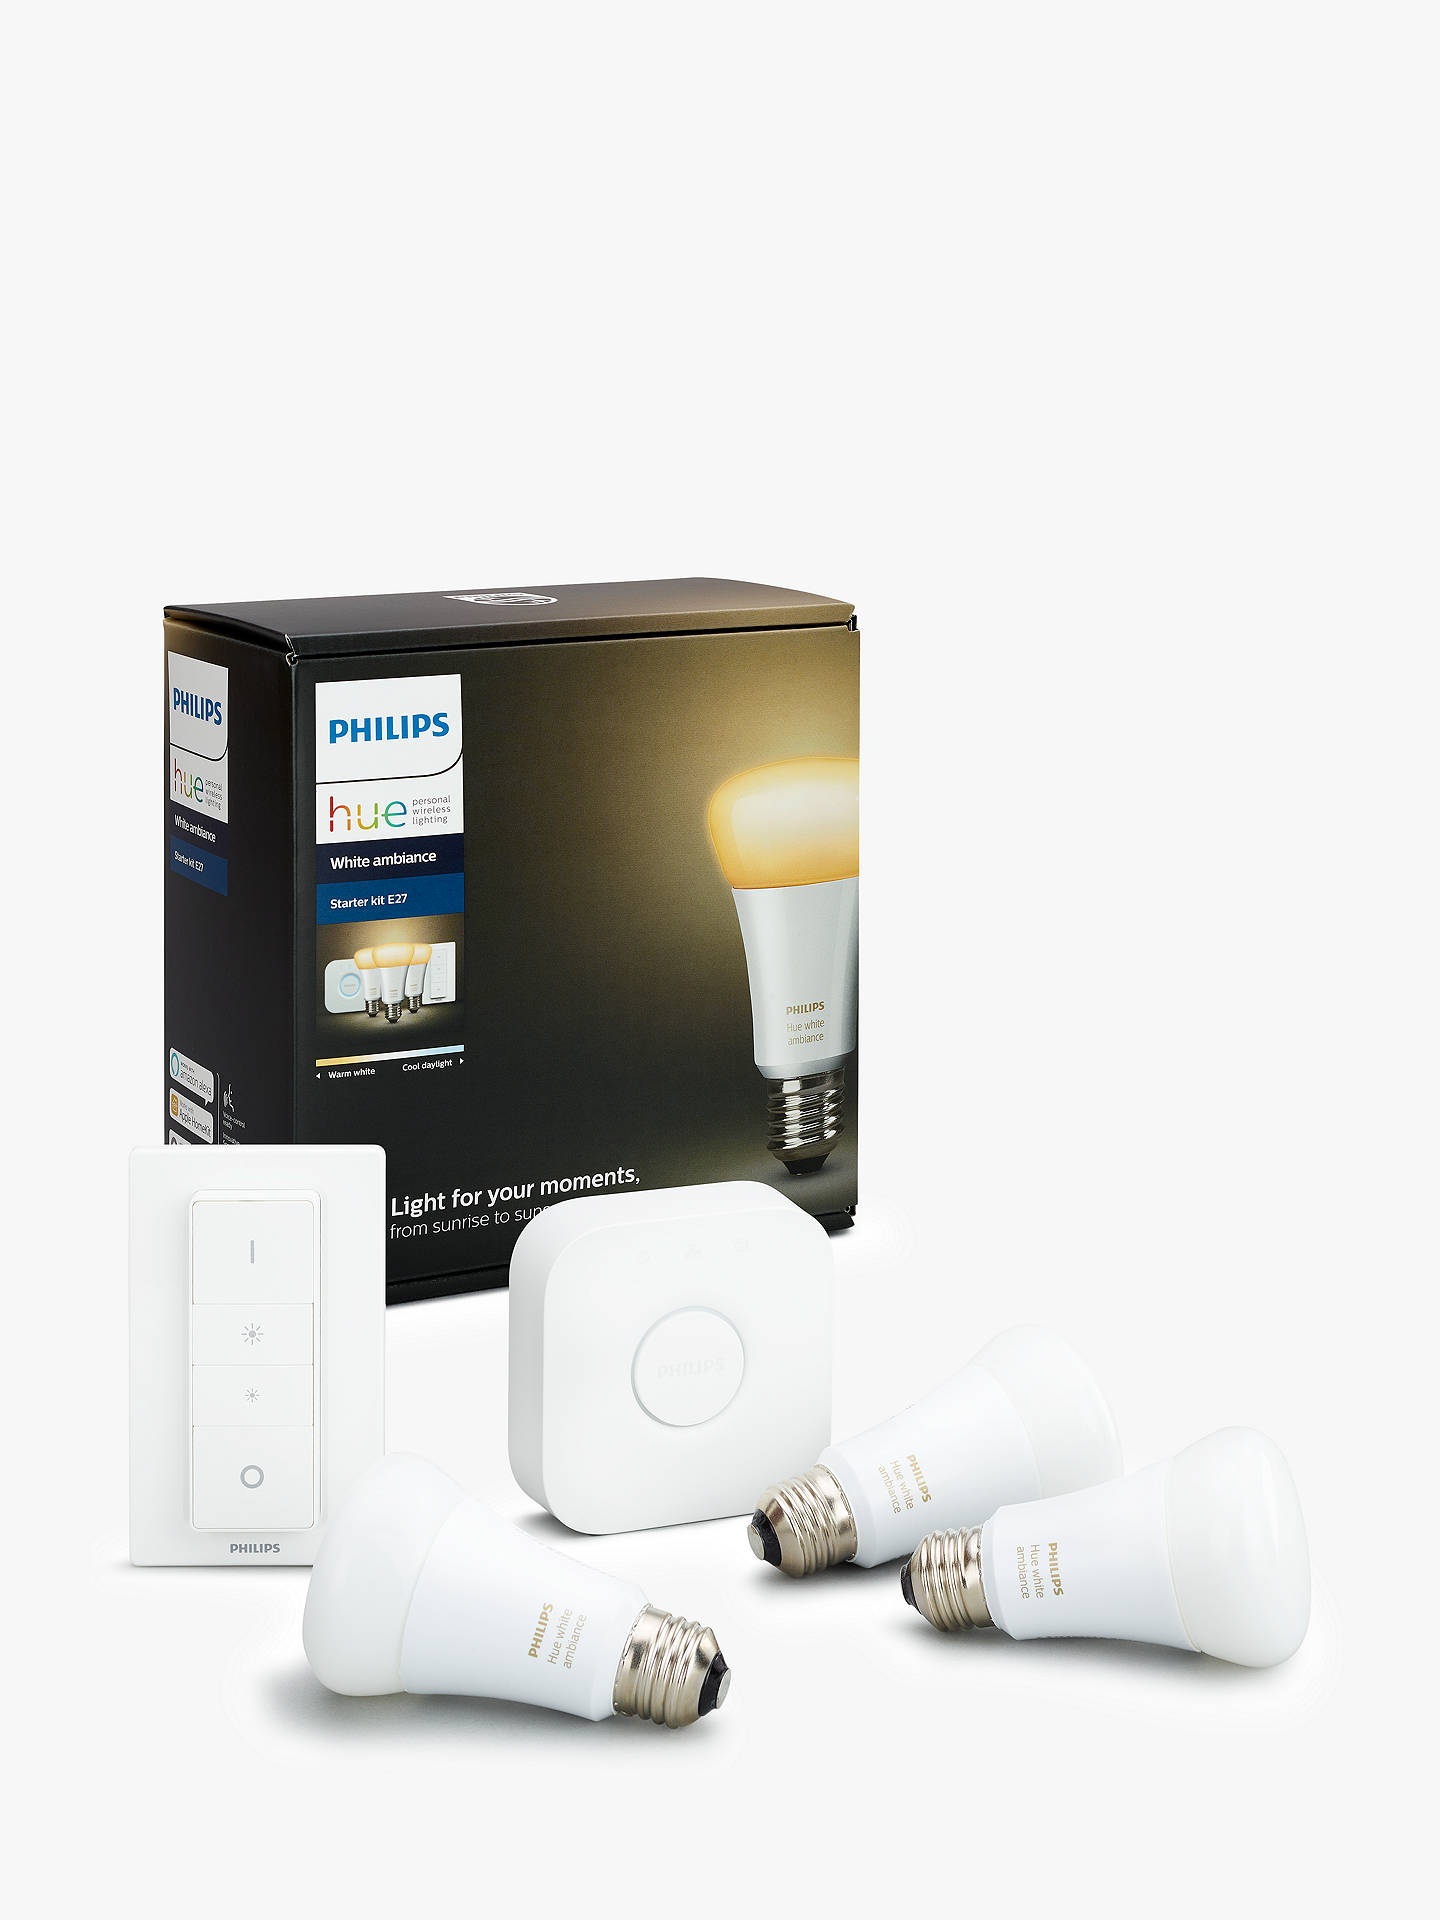 Buy Philips Hue White Ambiance Wireless Lighting LED Starter Kit with 3 Bulbs, 10W E27 Edison Screw Cap Online at johnlewis.com